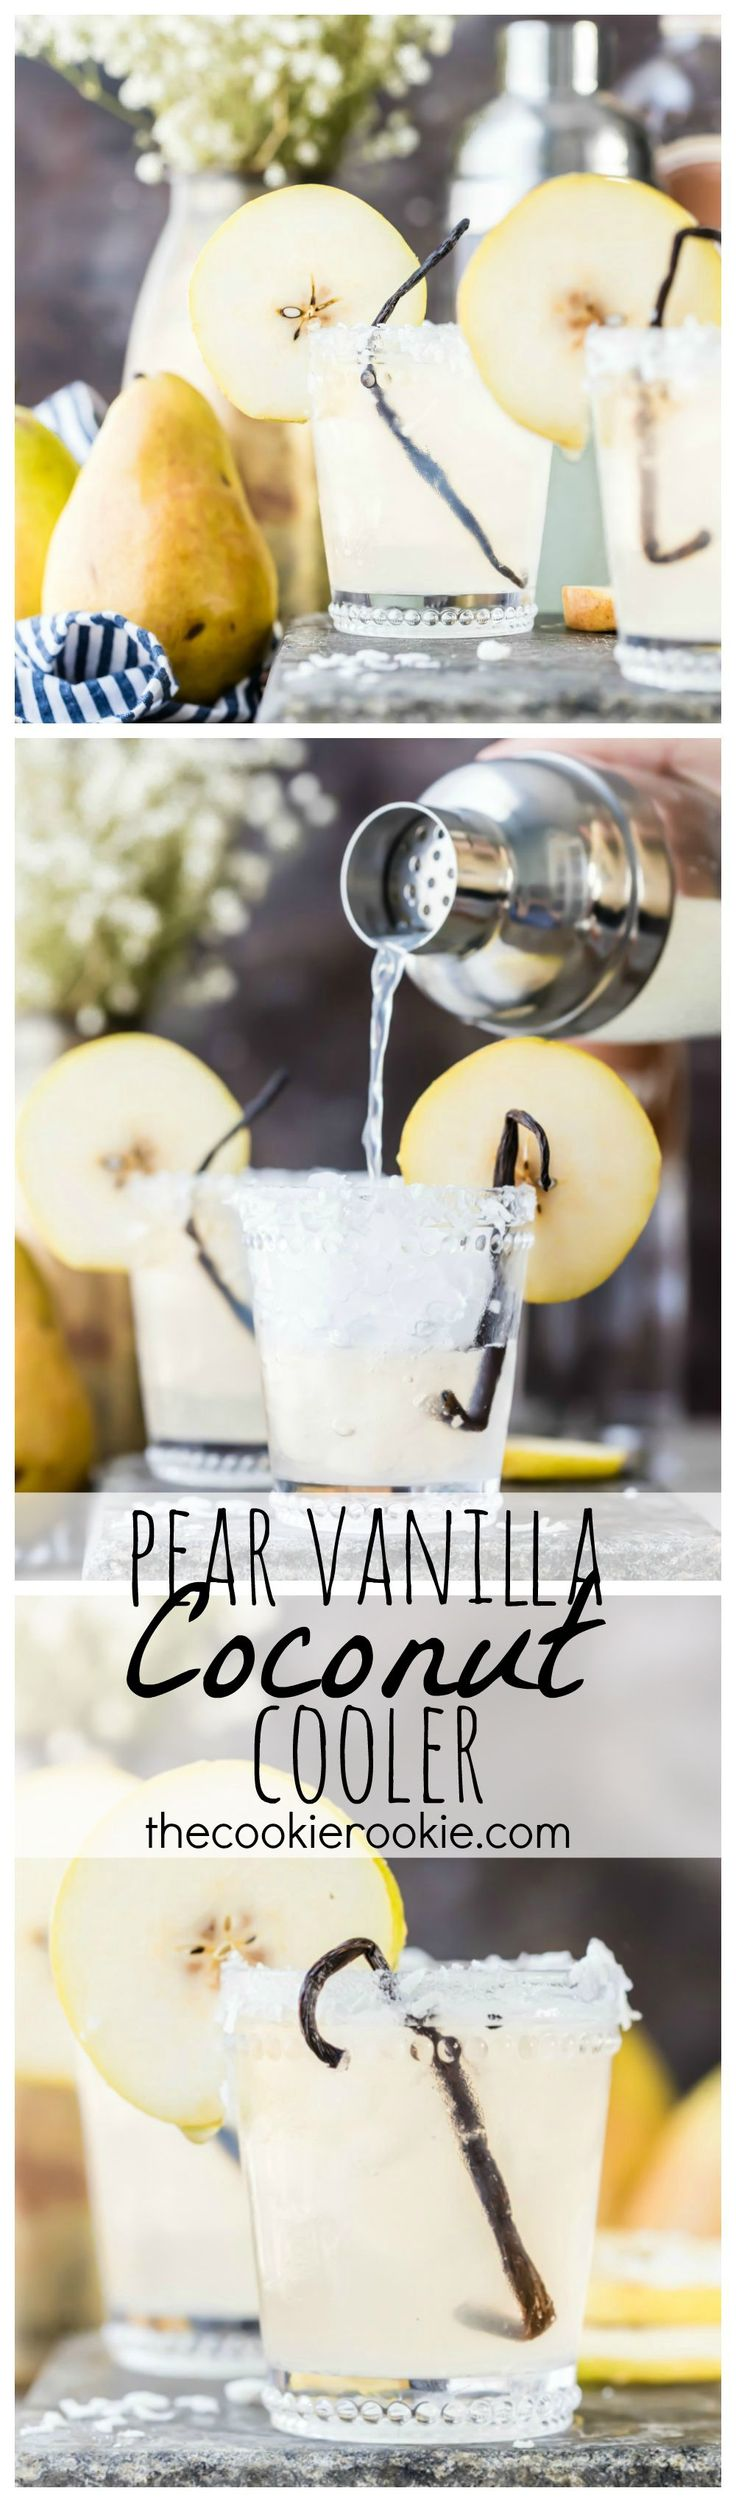 Pear vanilla and coconut!? Is this what dreams are made of? xx